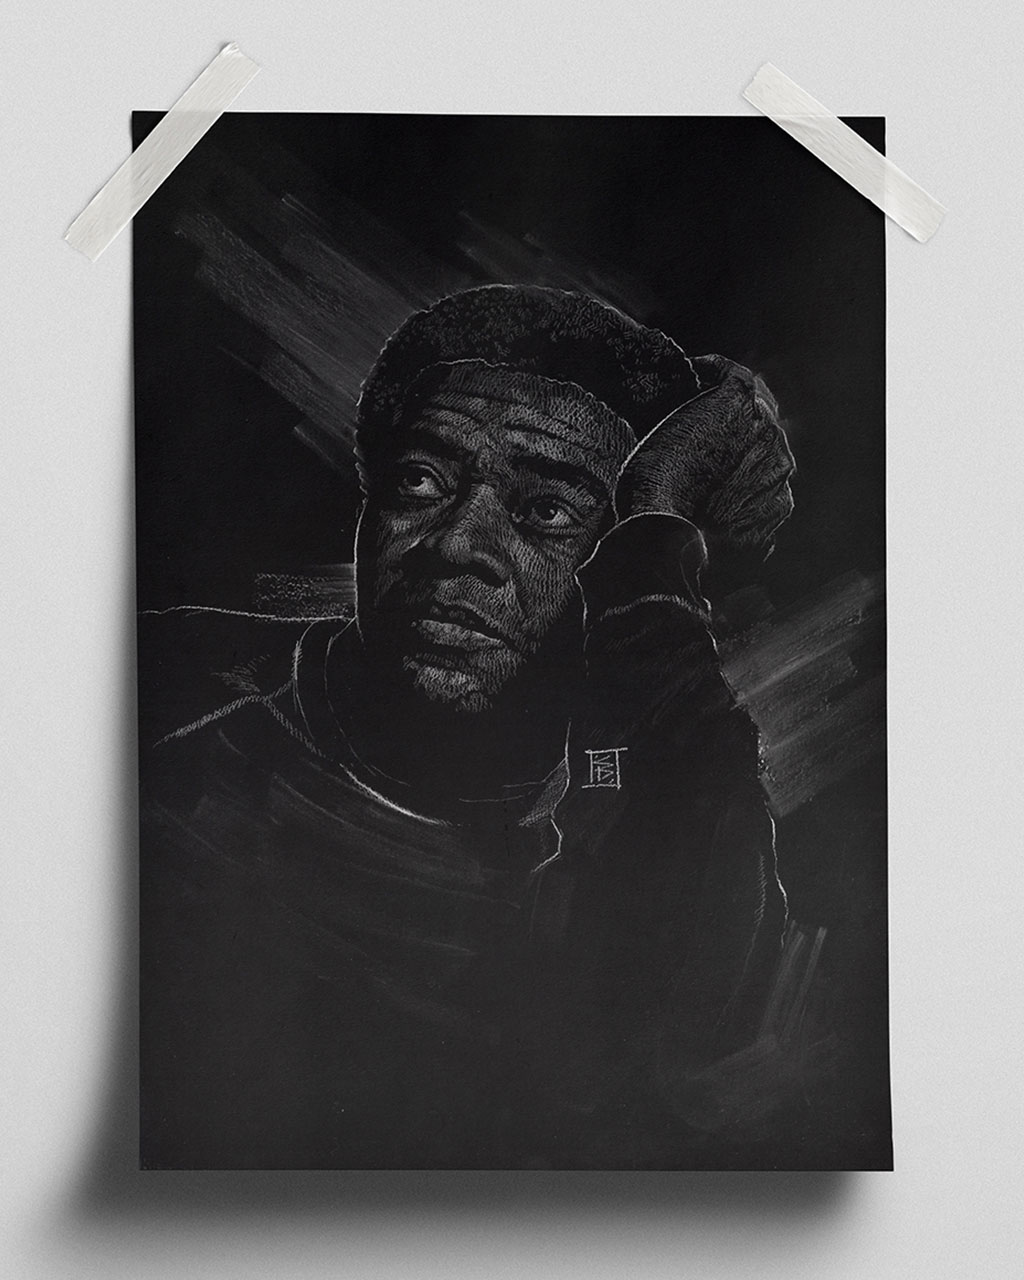 Bill Withers - Fine Art Print (Gliceé)